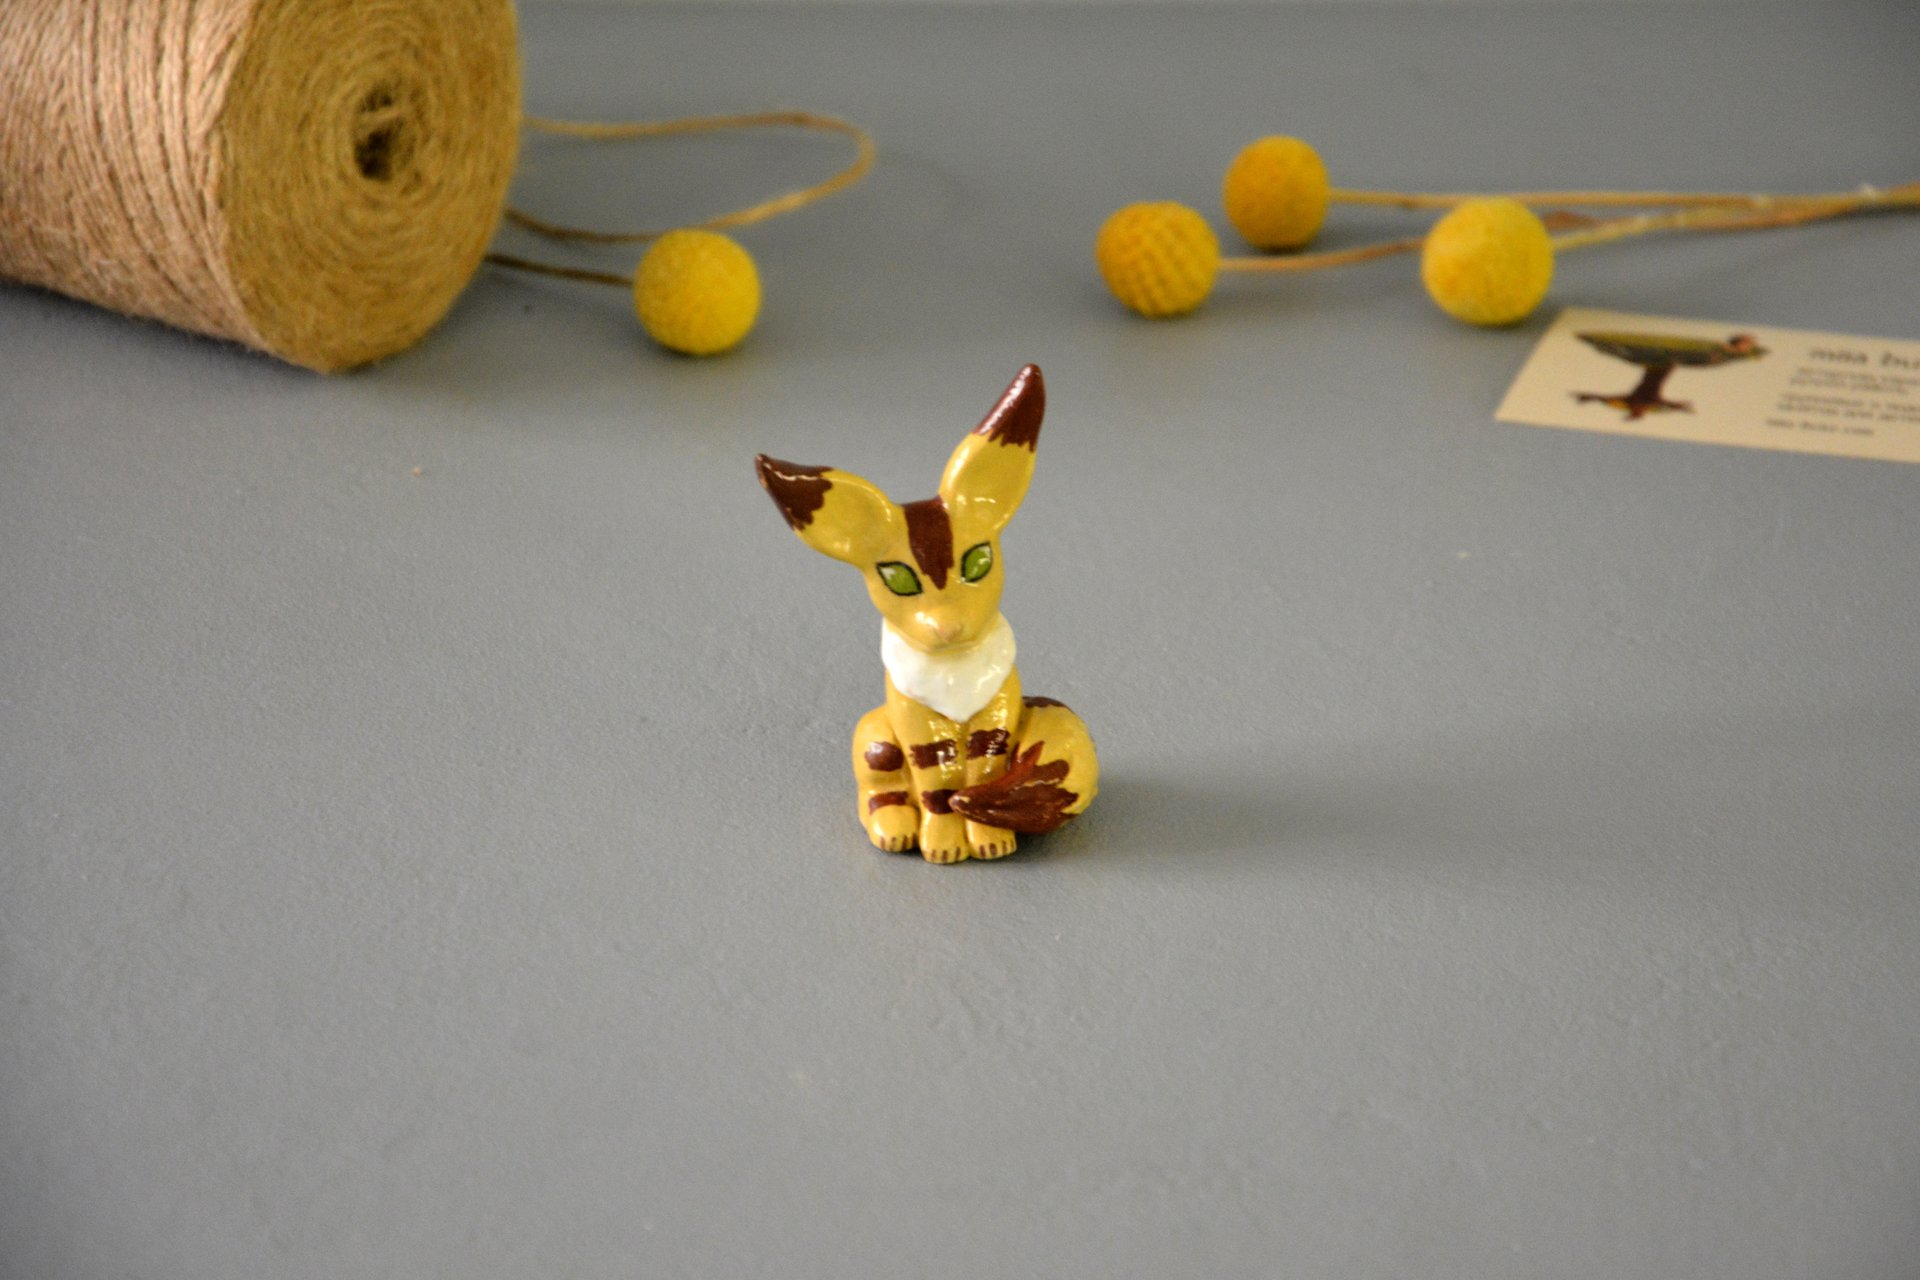 "Squirrel-fox figurine, a character from the anime ""Navsikai from the valley of the winds, height 7cm, photo 6 of 6."